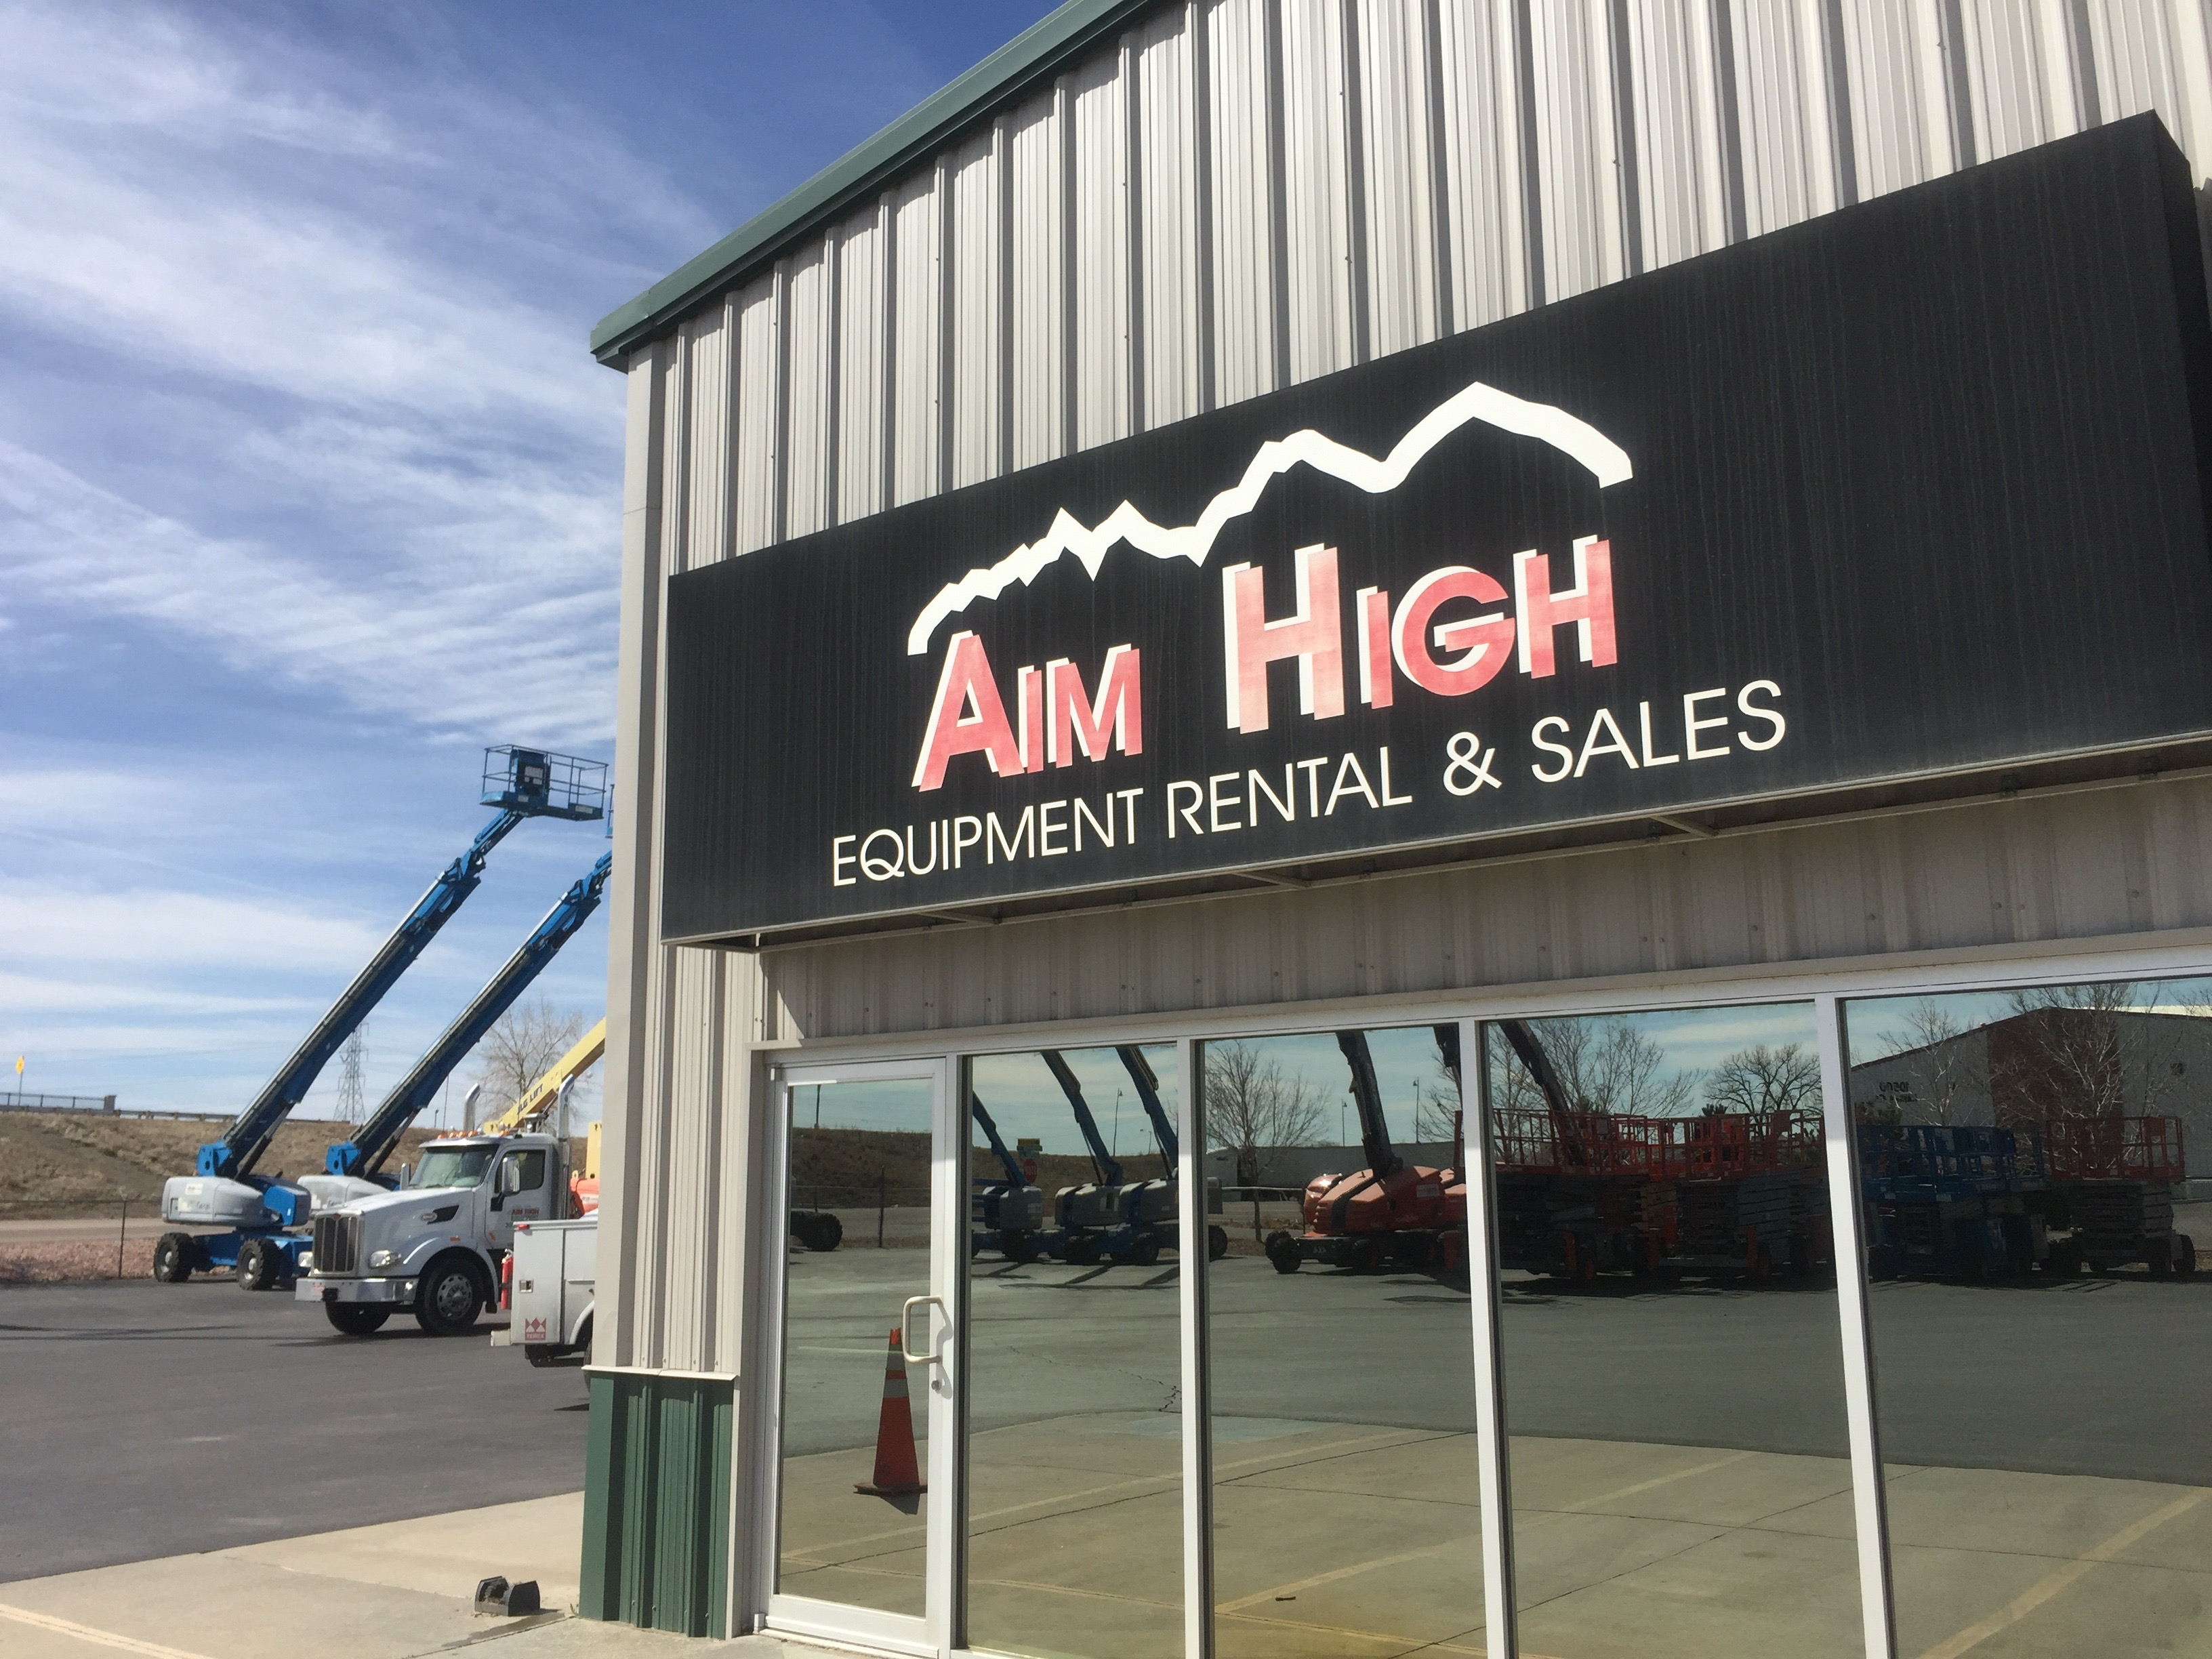 Aim High Equipment - Lift Equipment Rental & Sales